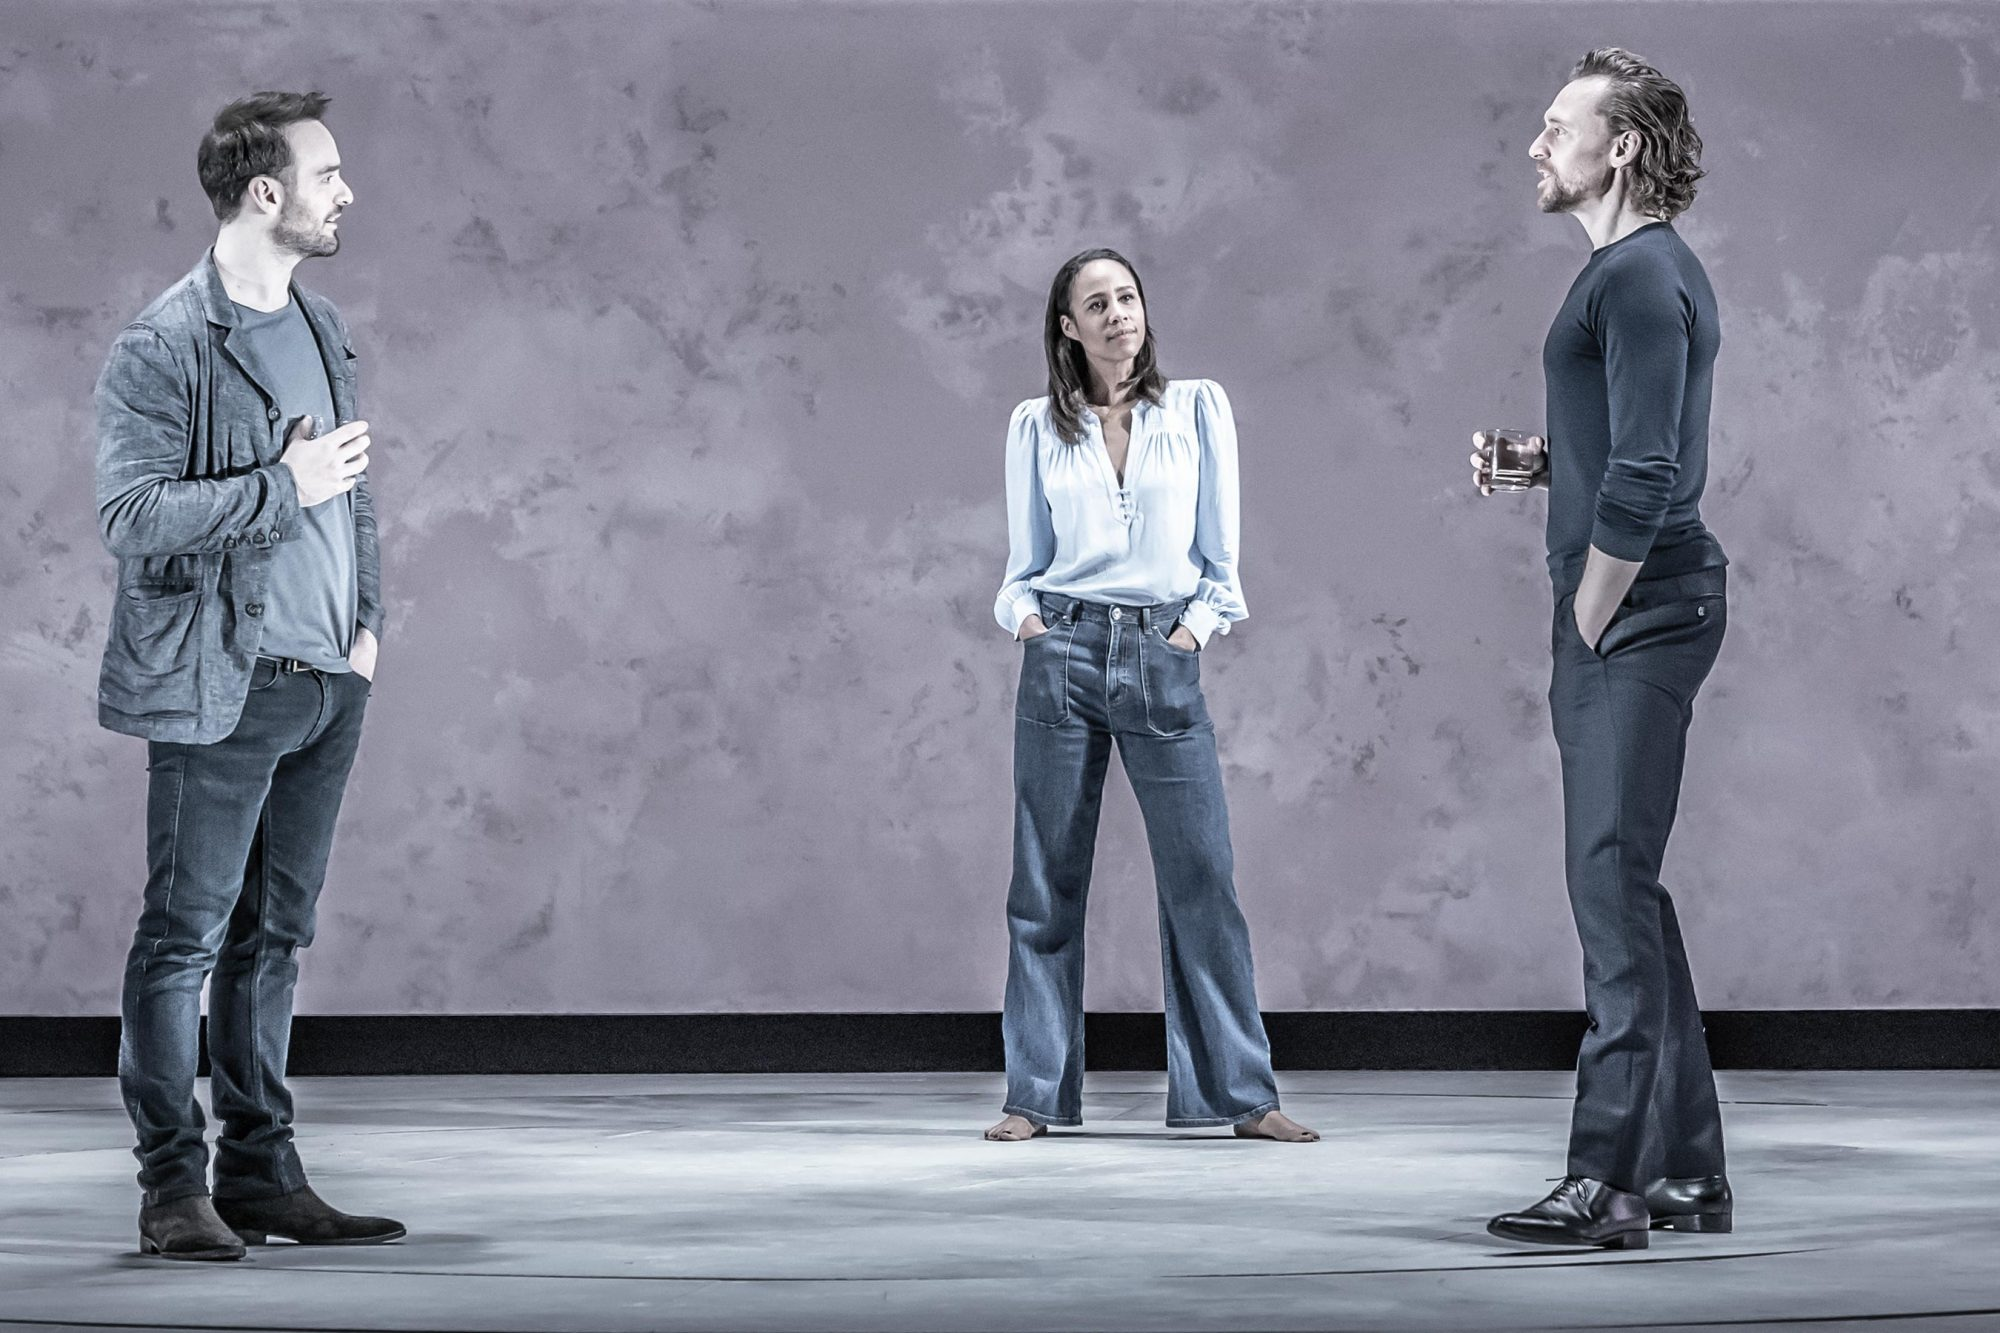 Betrayal Charlie Cox, Zawe Ashton, and Tom Hiddleston CR: Marc Brenner